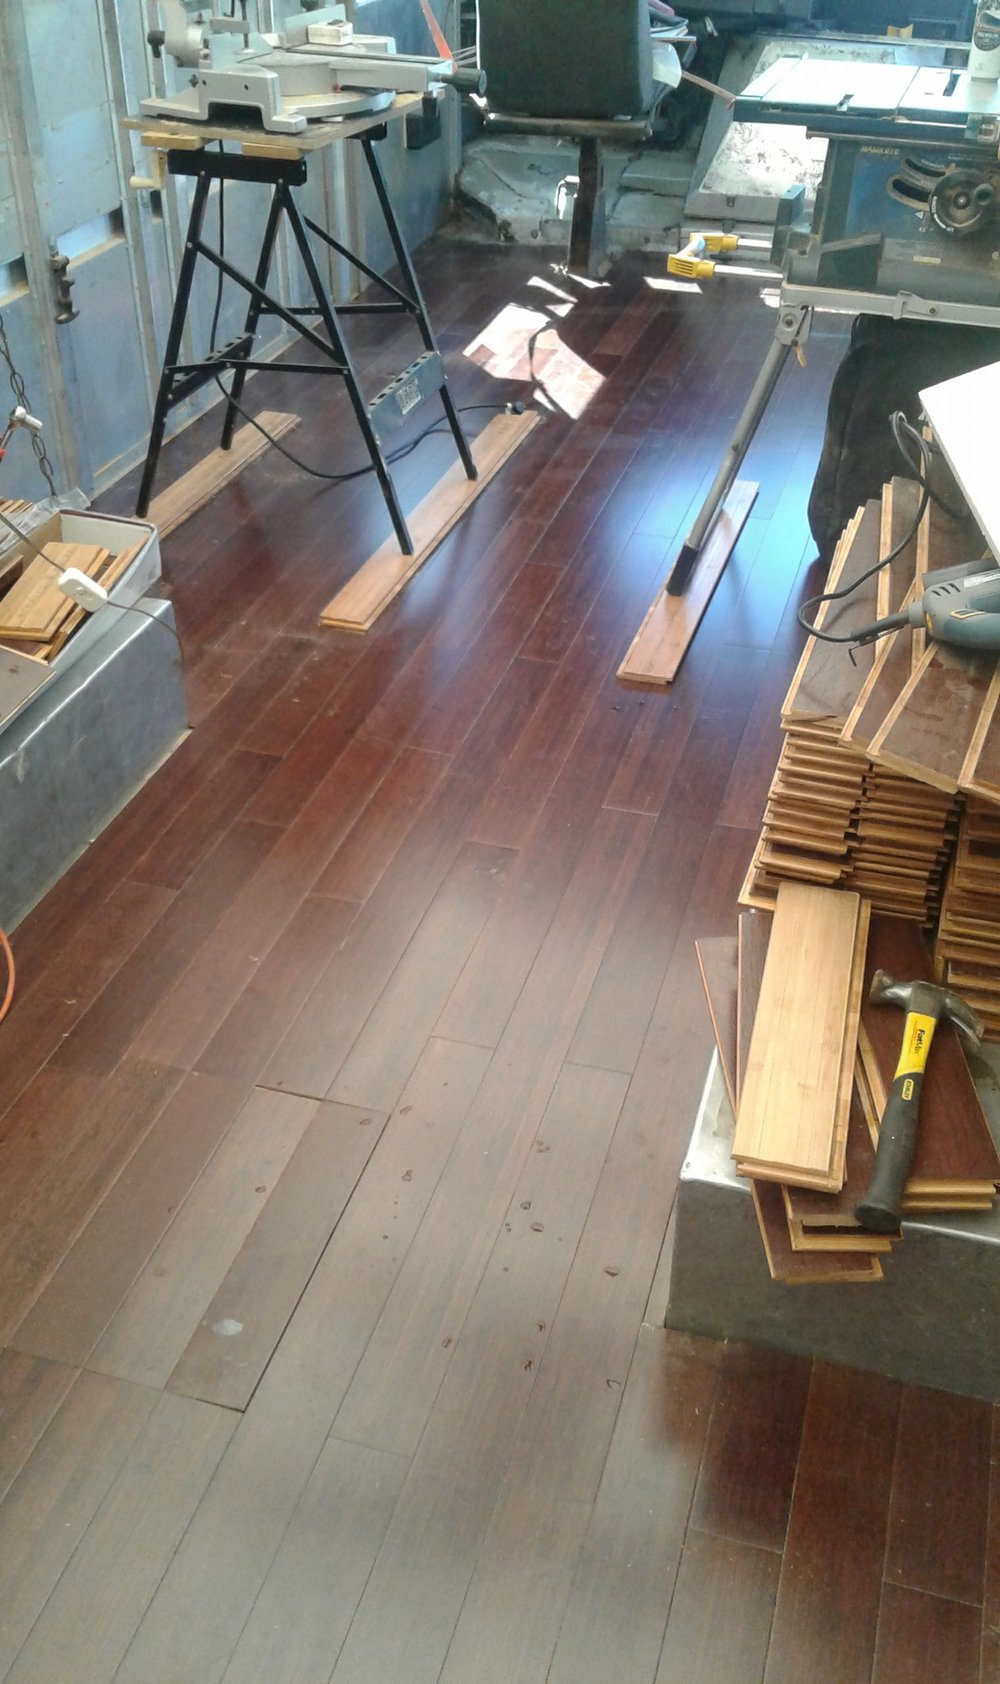 Reclaimed bamboo flooring? Don't mind if I do...  -